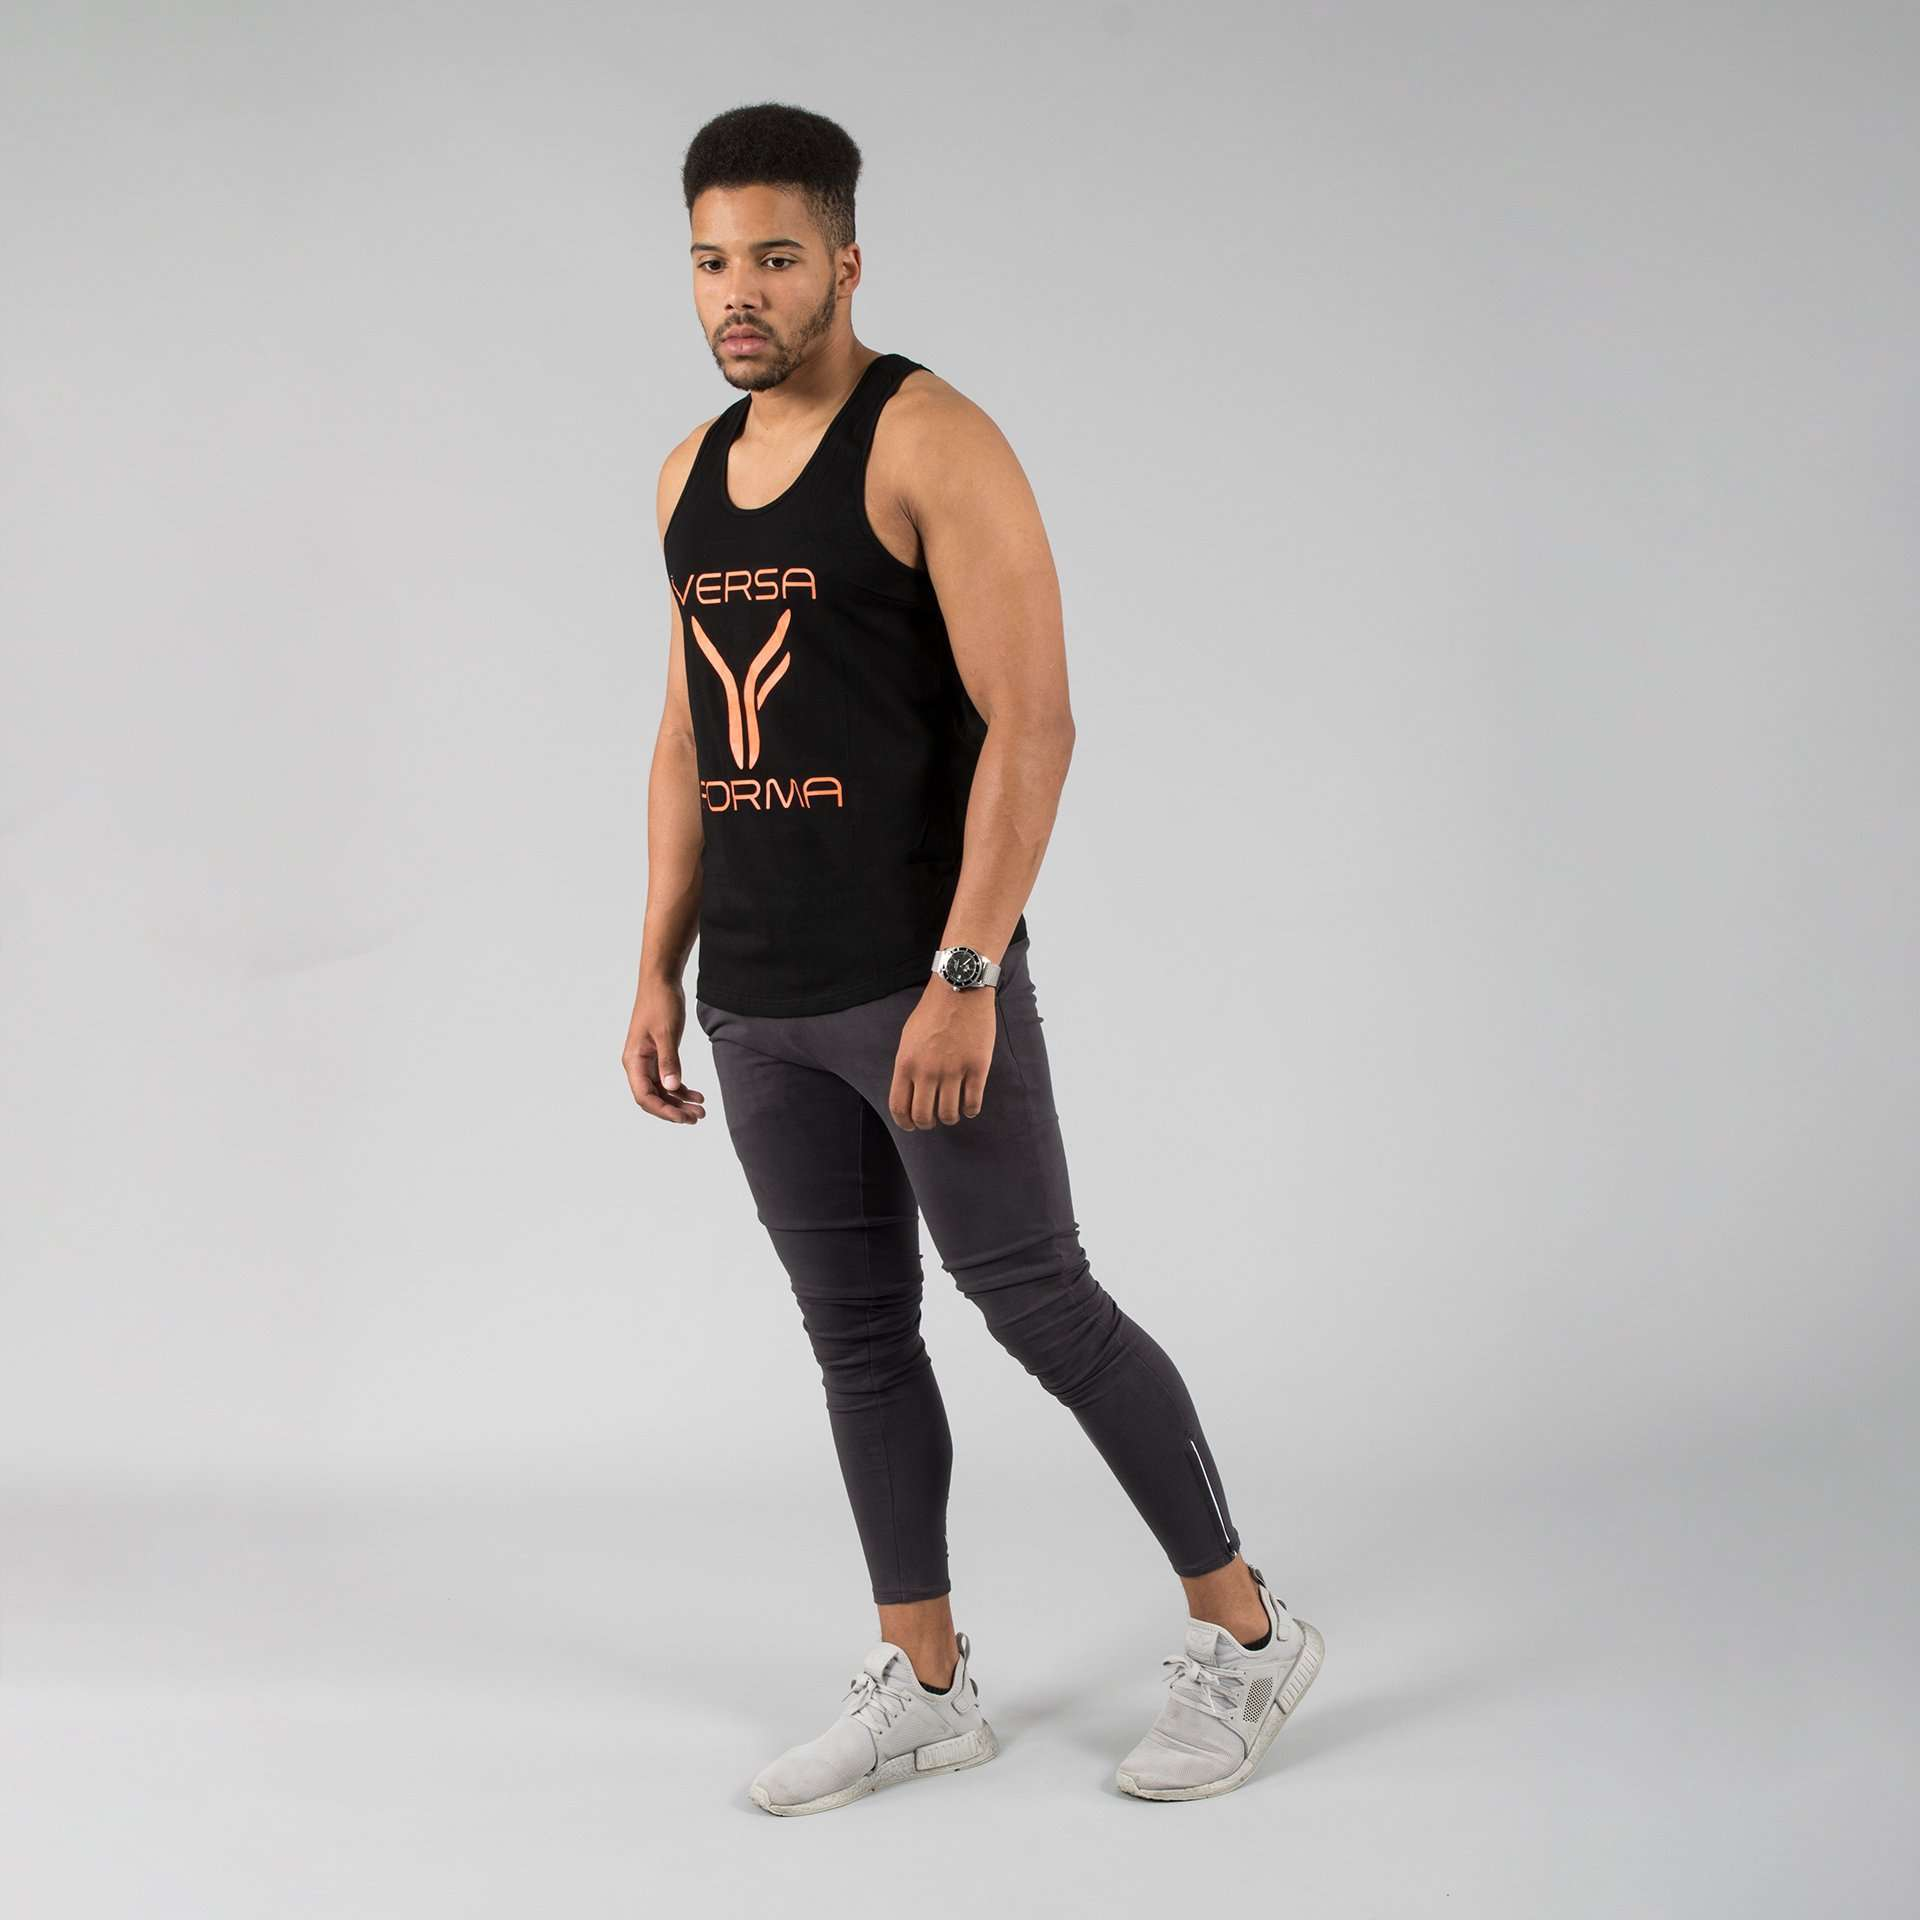 Versa Forma | Basic Vest - Black/Orange